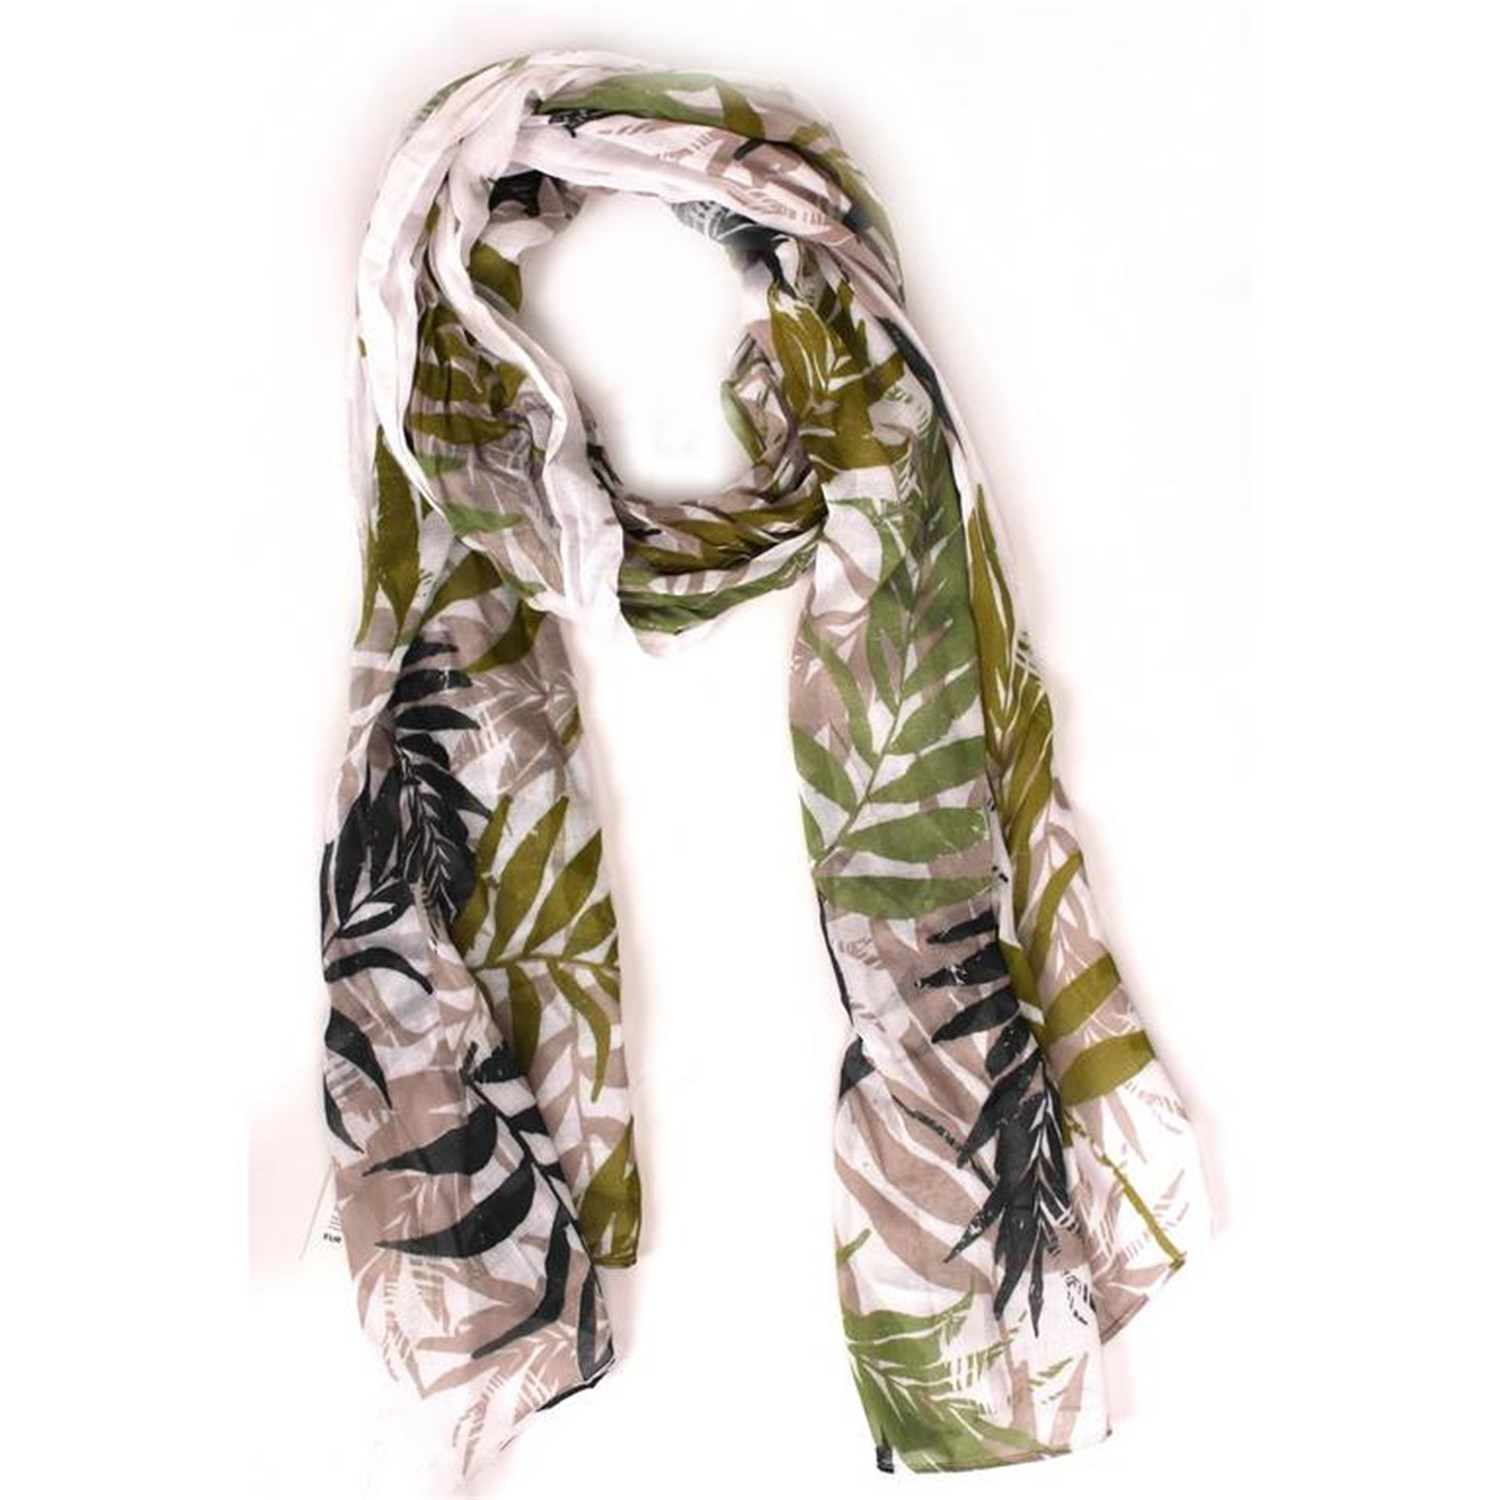 Passigatti Accessories Accessories Scarves GREEN 13108